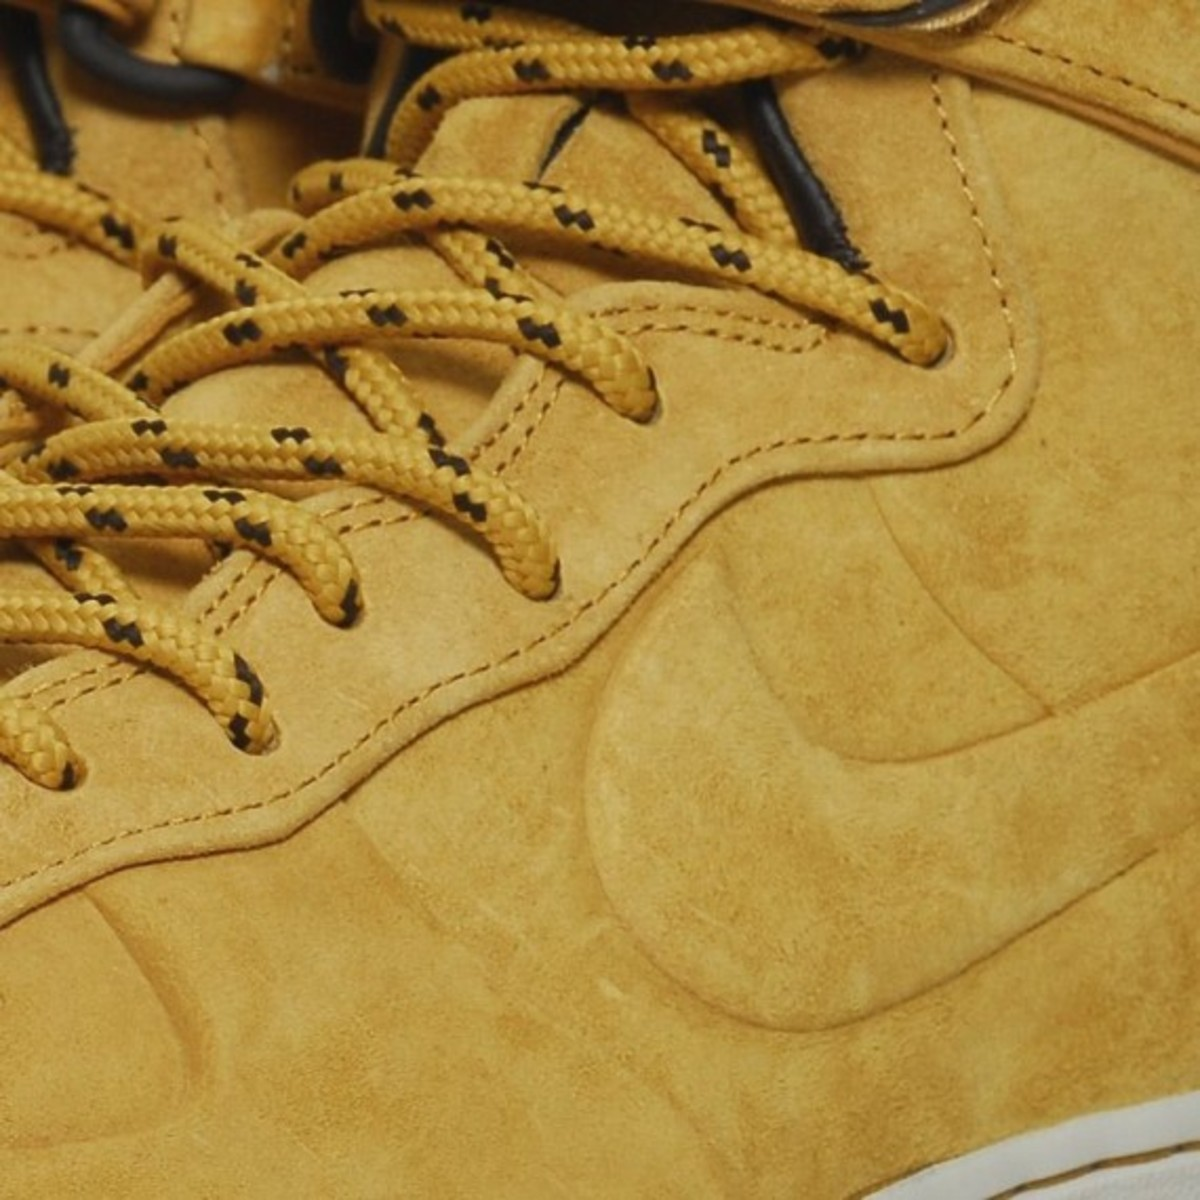 nike-air-force-1-high-vt-premium-qs-05